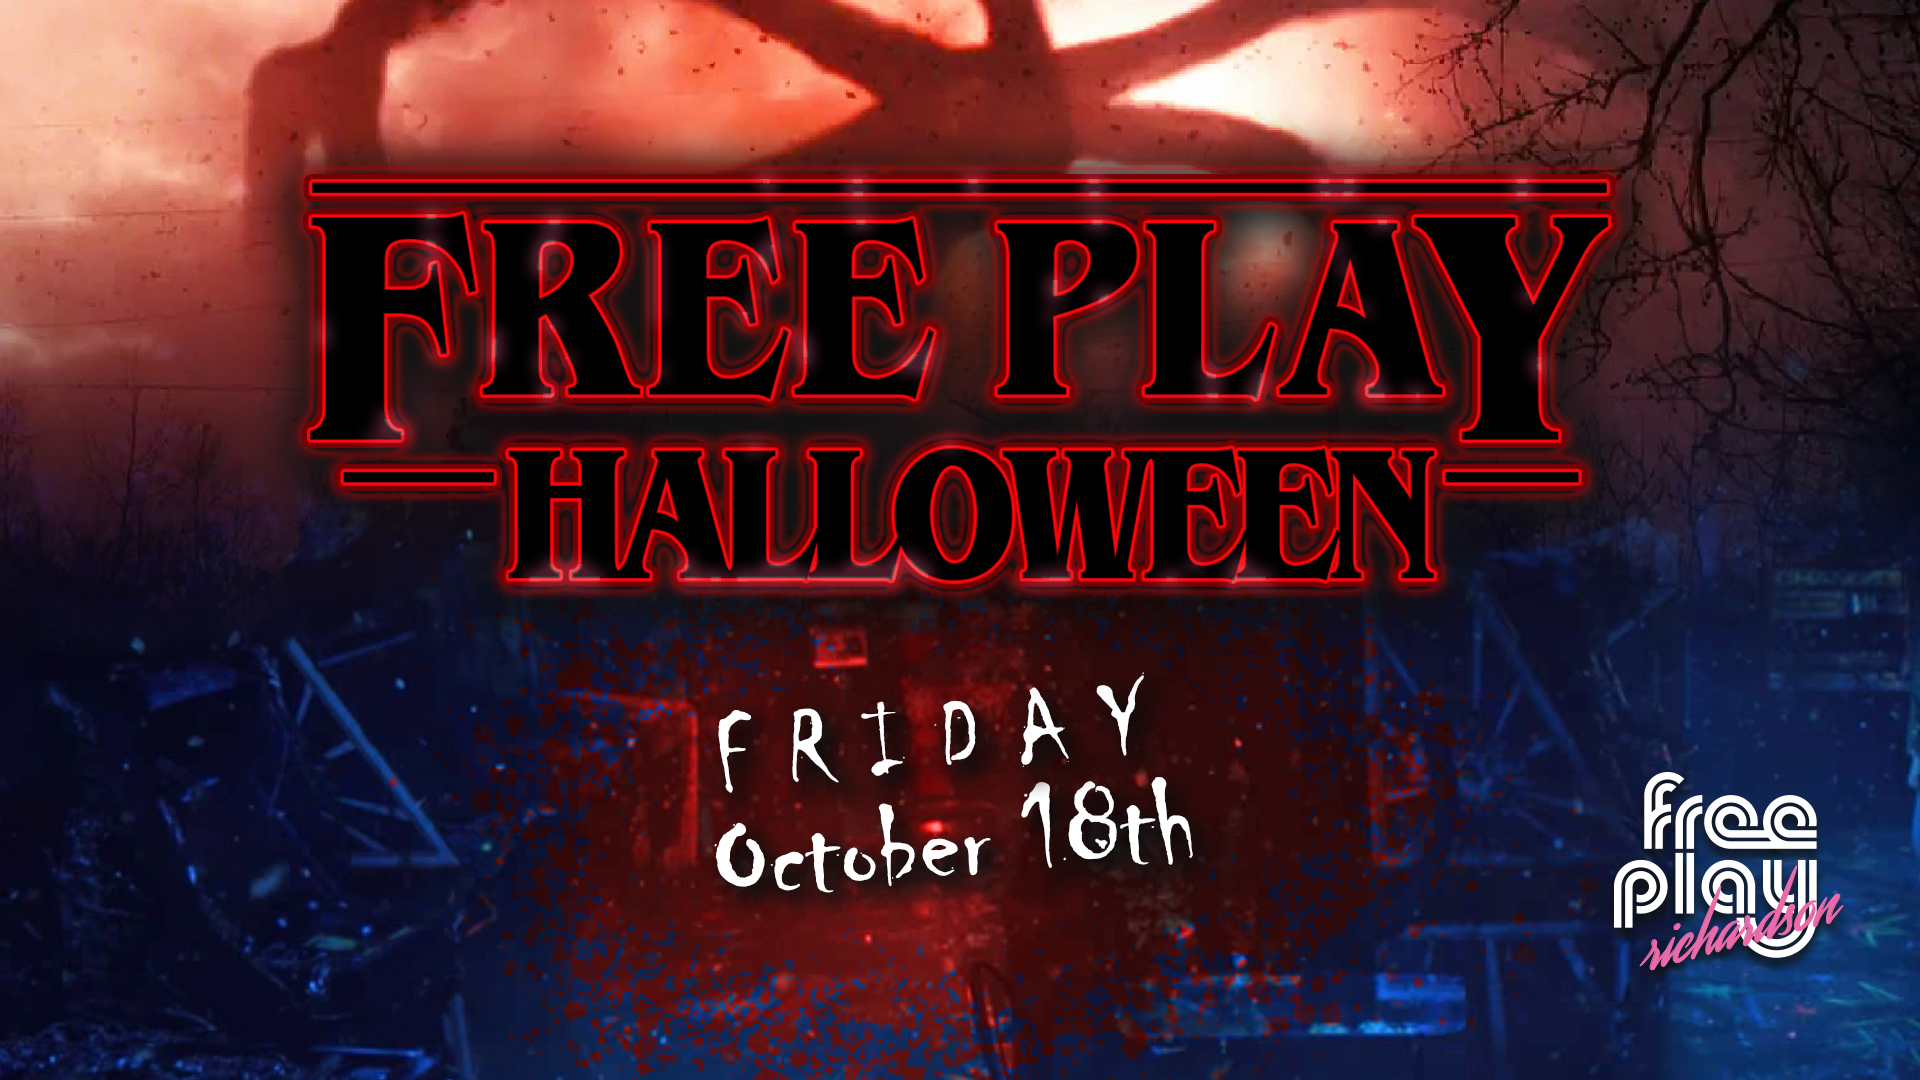 Free Play Richardson Halloween